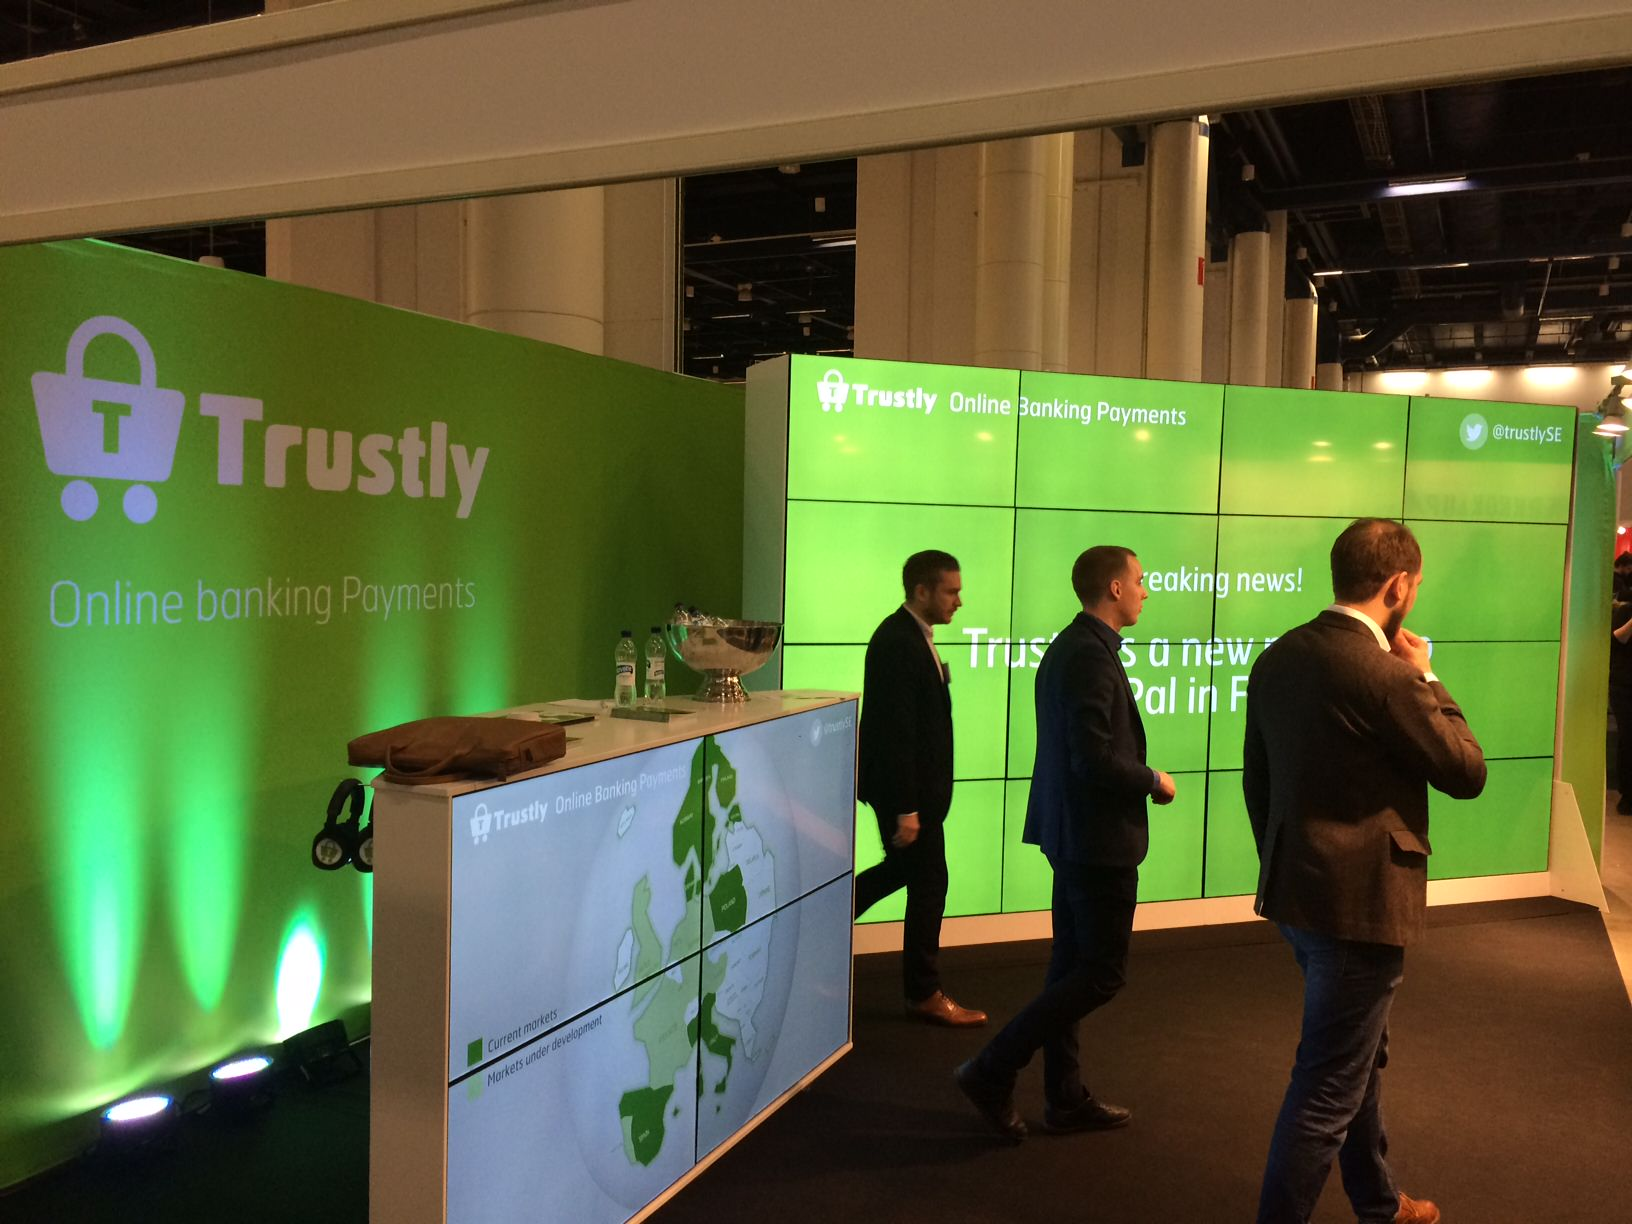 Recap after two days of e-commerce with Trustly in Helsinki